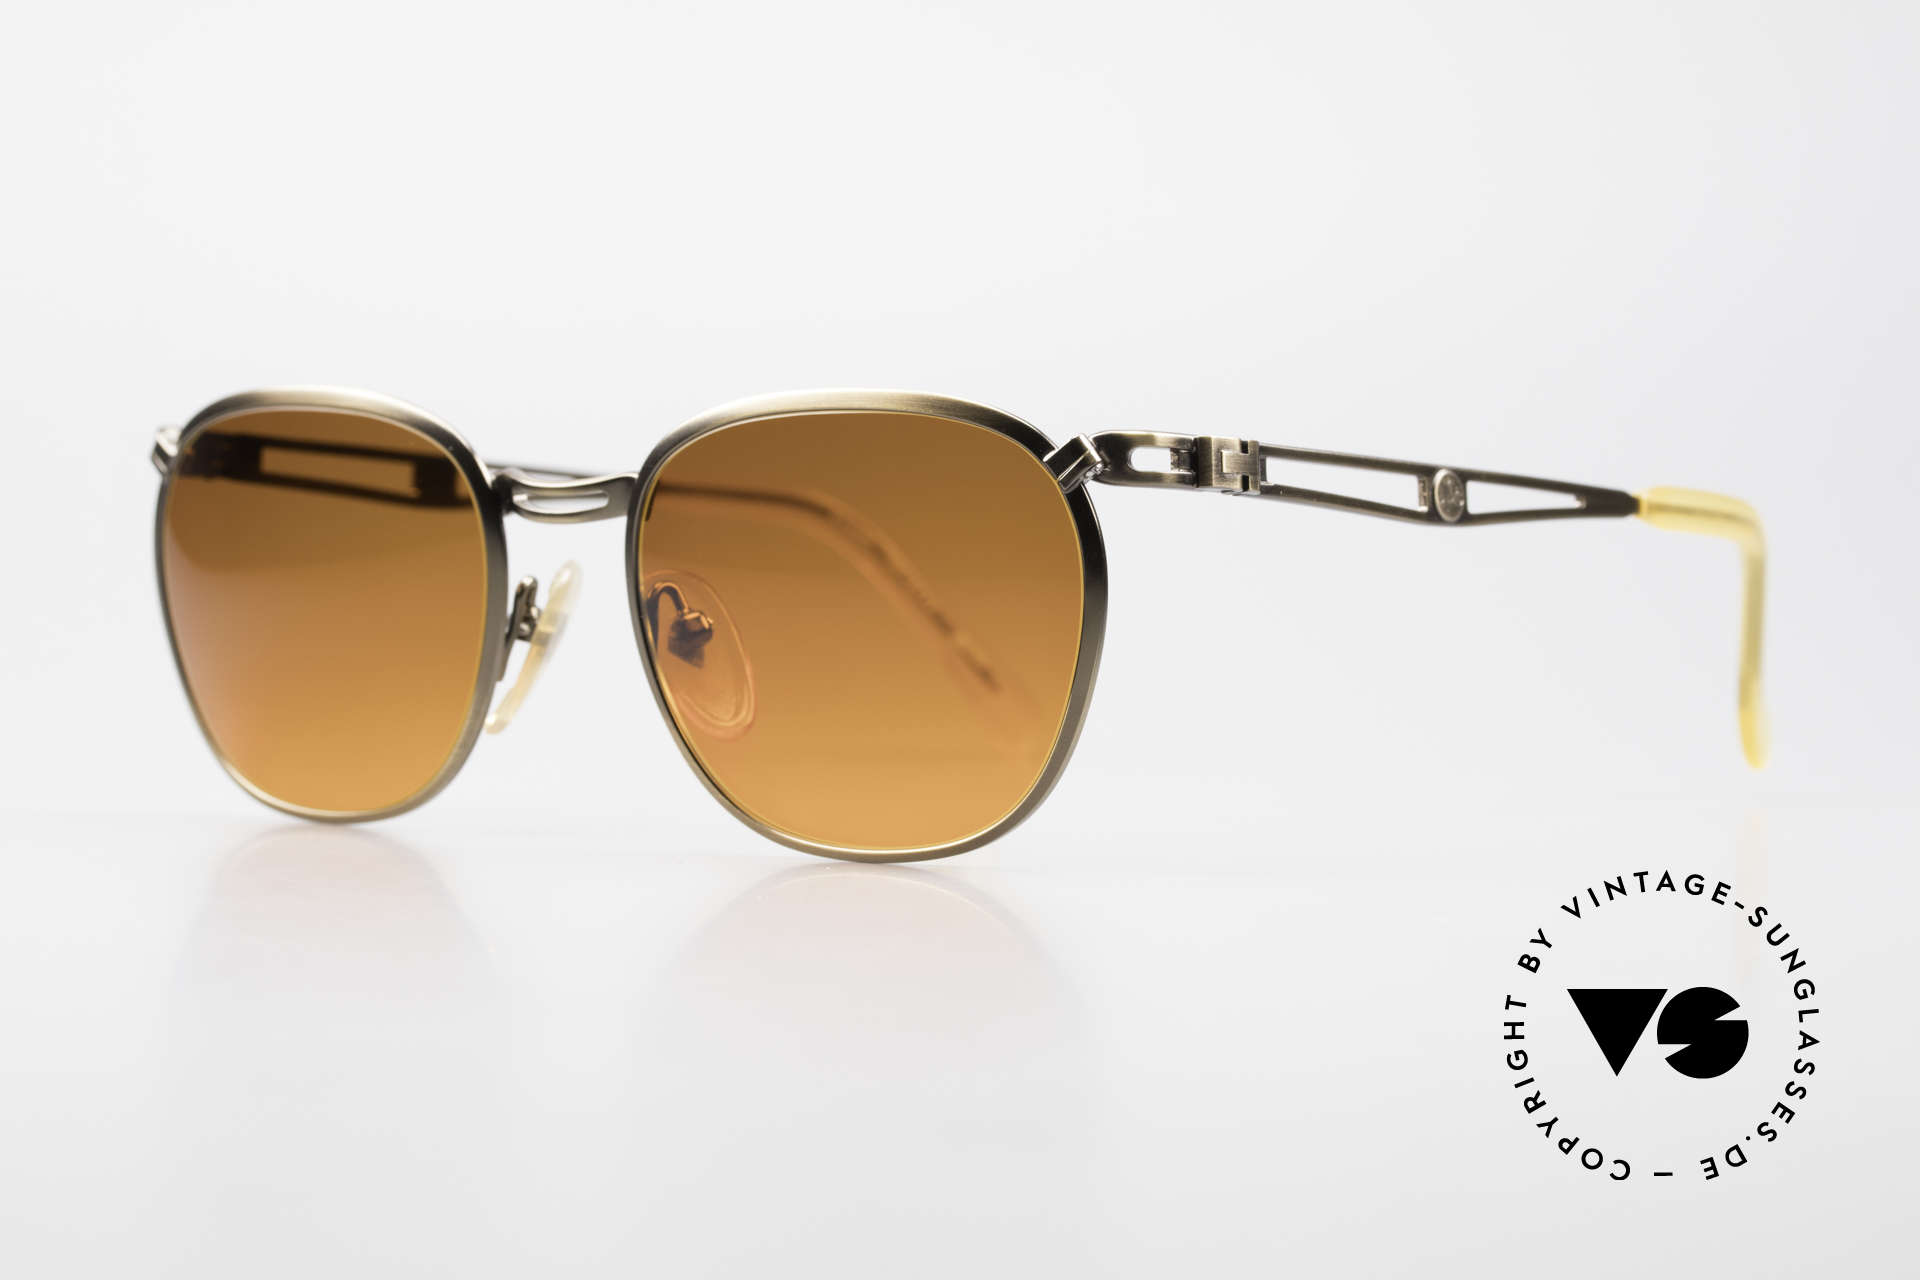 Jean Paul Gaultier 56-2177 Sunset Lenses Orange Gradient, but high-end quality (monolithic), typically JPG!, Made for Men and Women